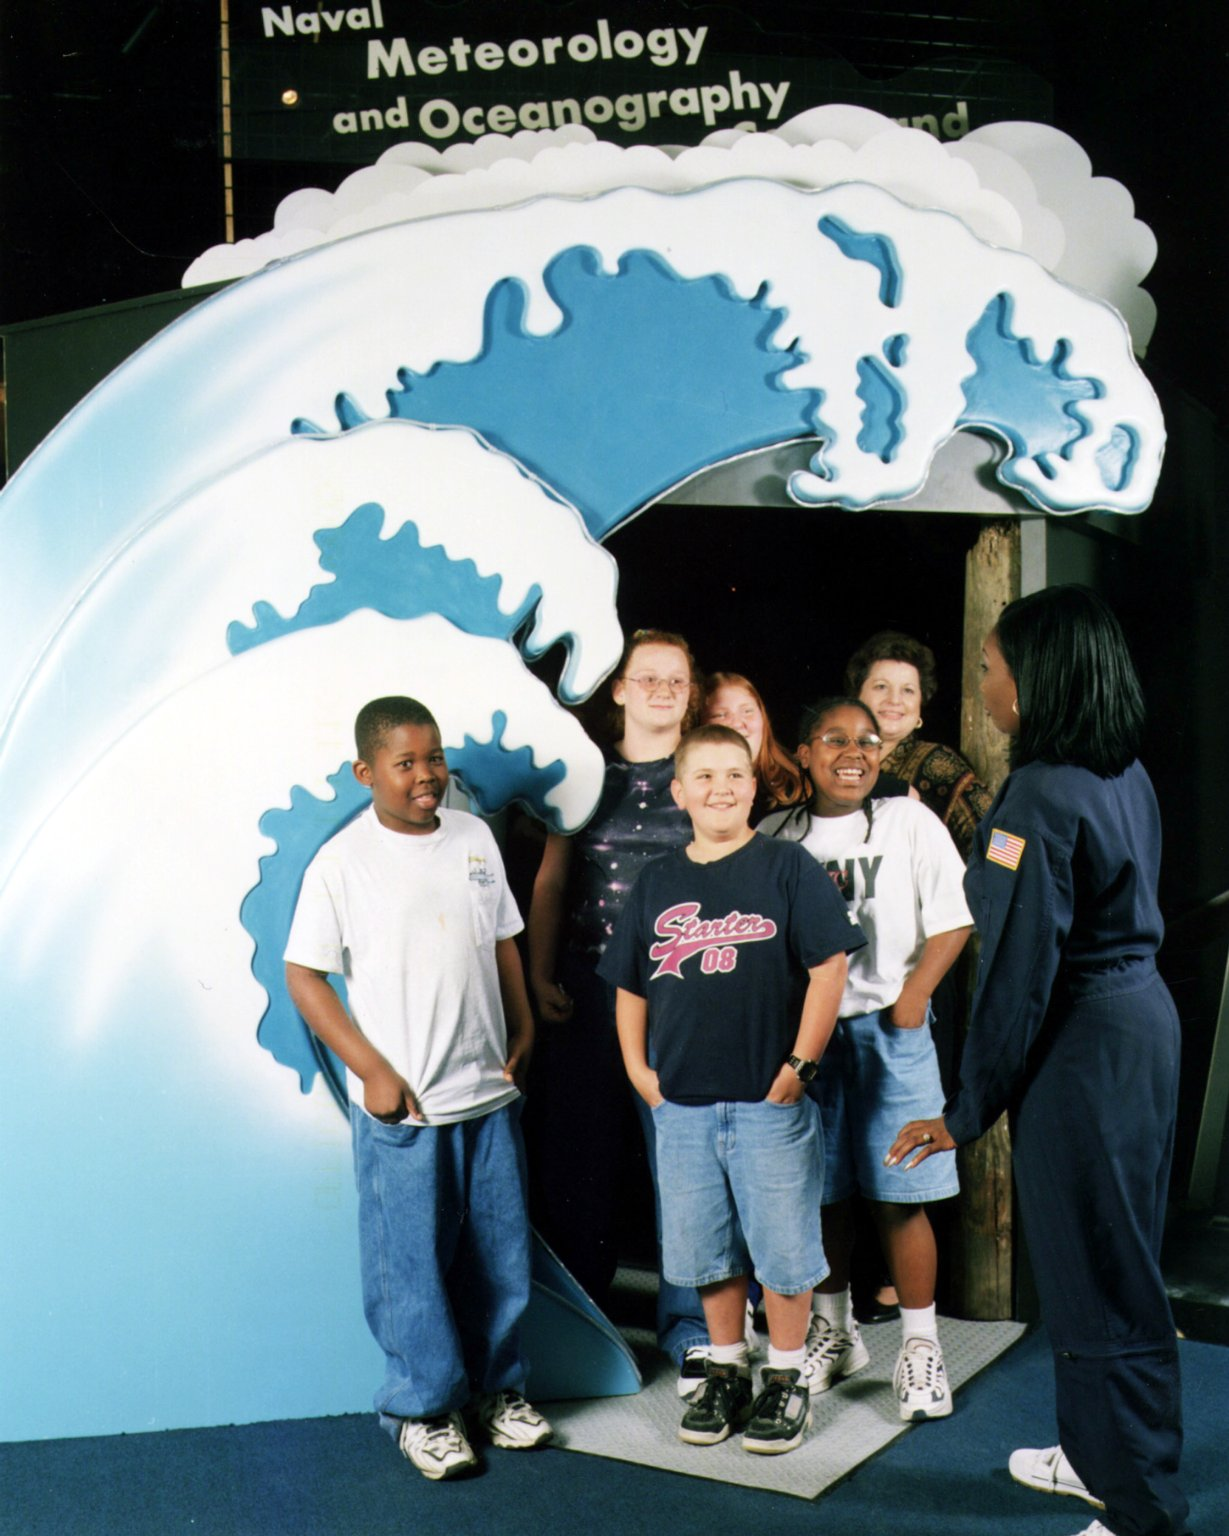 Naval Meteorology and Oceanography Command exhibit entrance